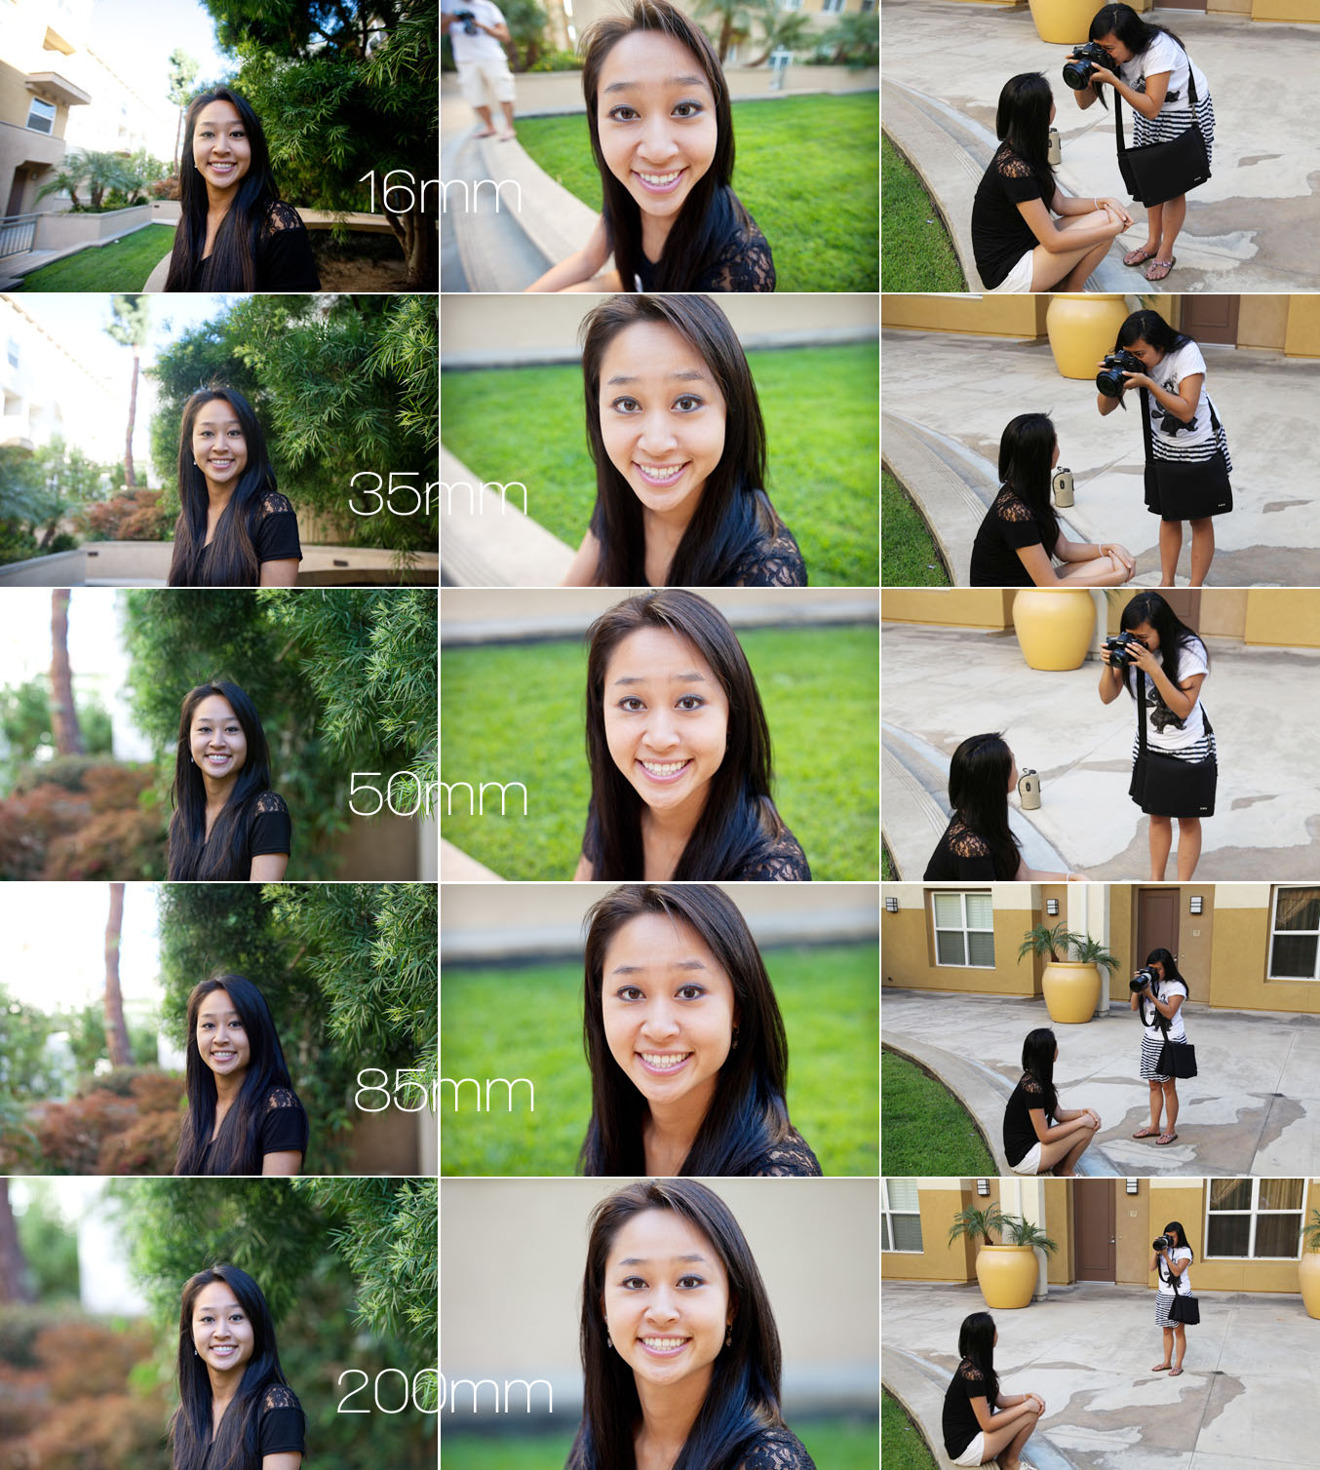 Comparison of focal lengths for portraits (via DPReview)